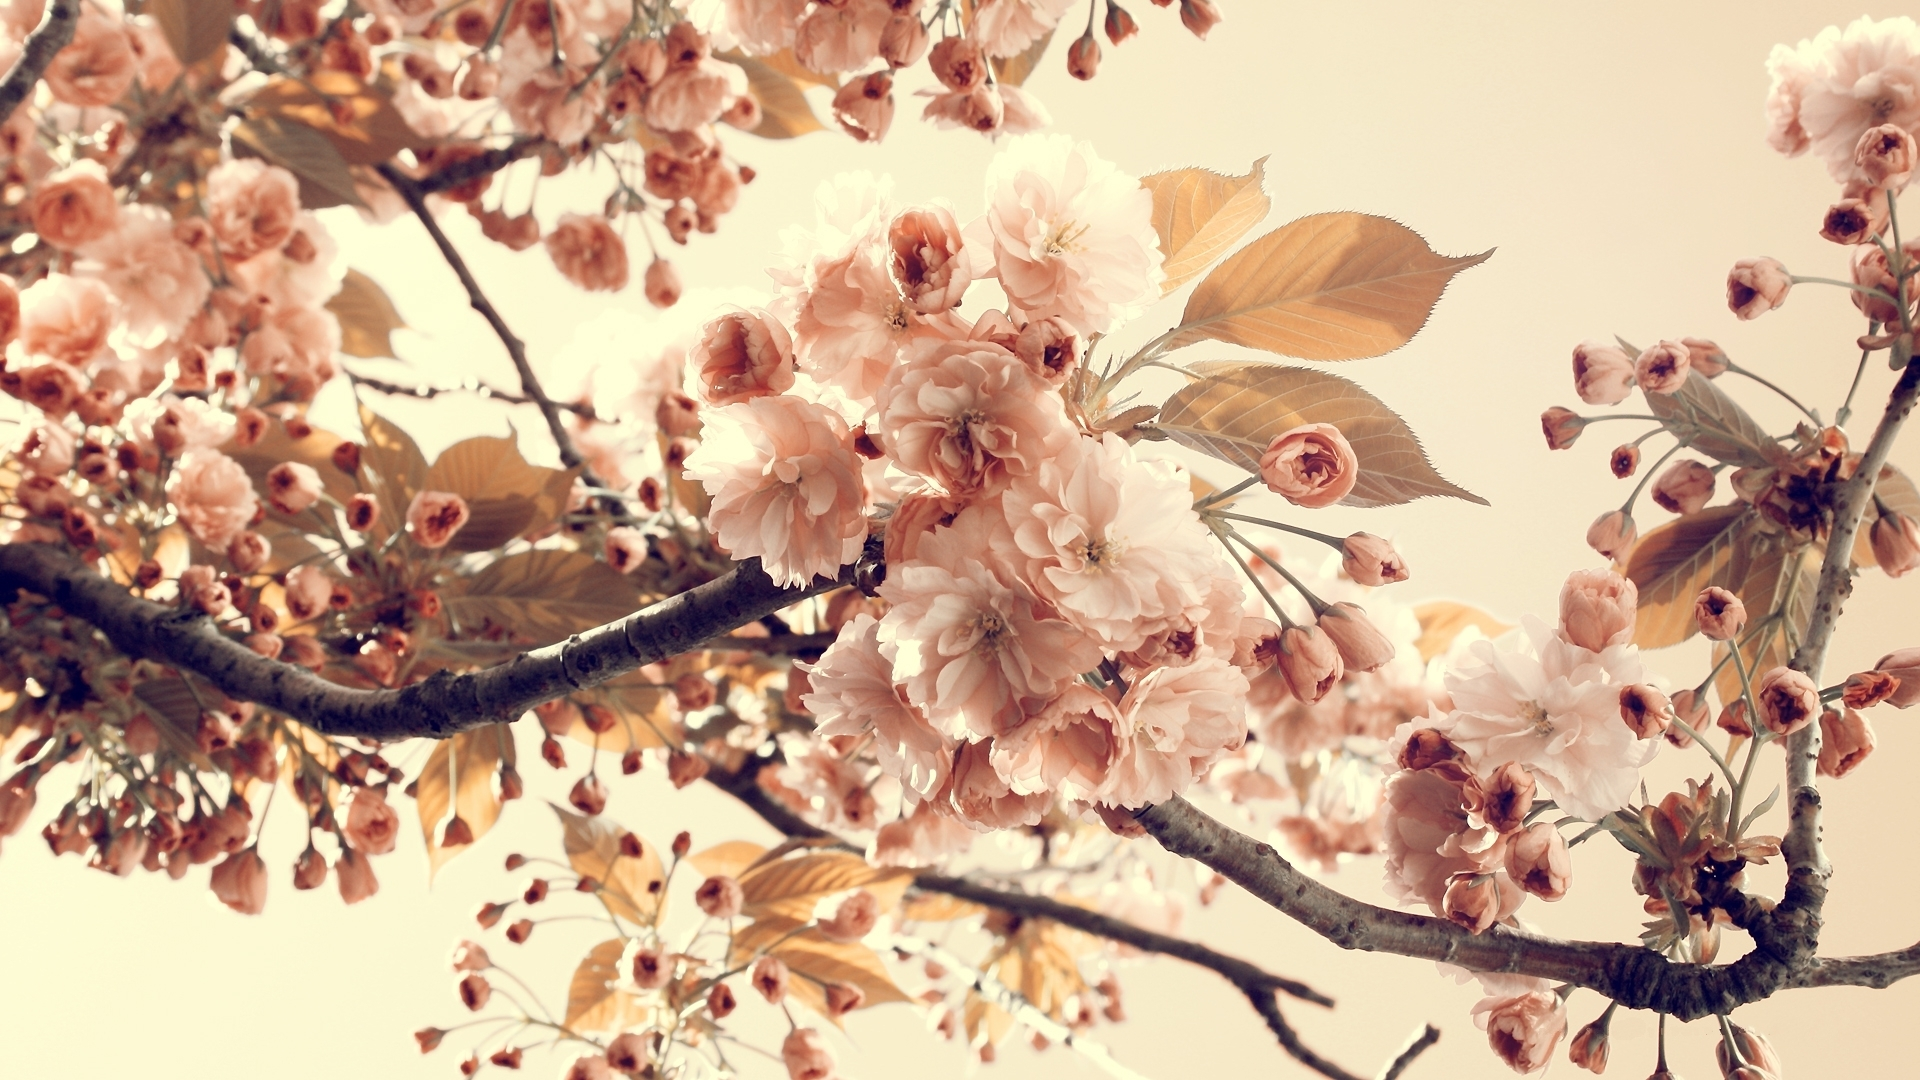 apple-blossom-free-download-1920×1080-wallpaper-wpc9001625